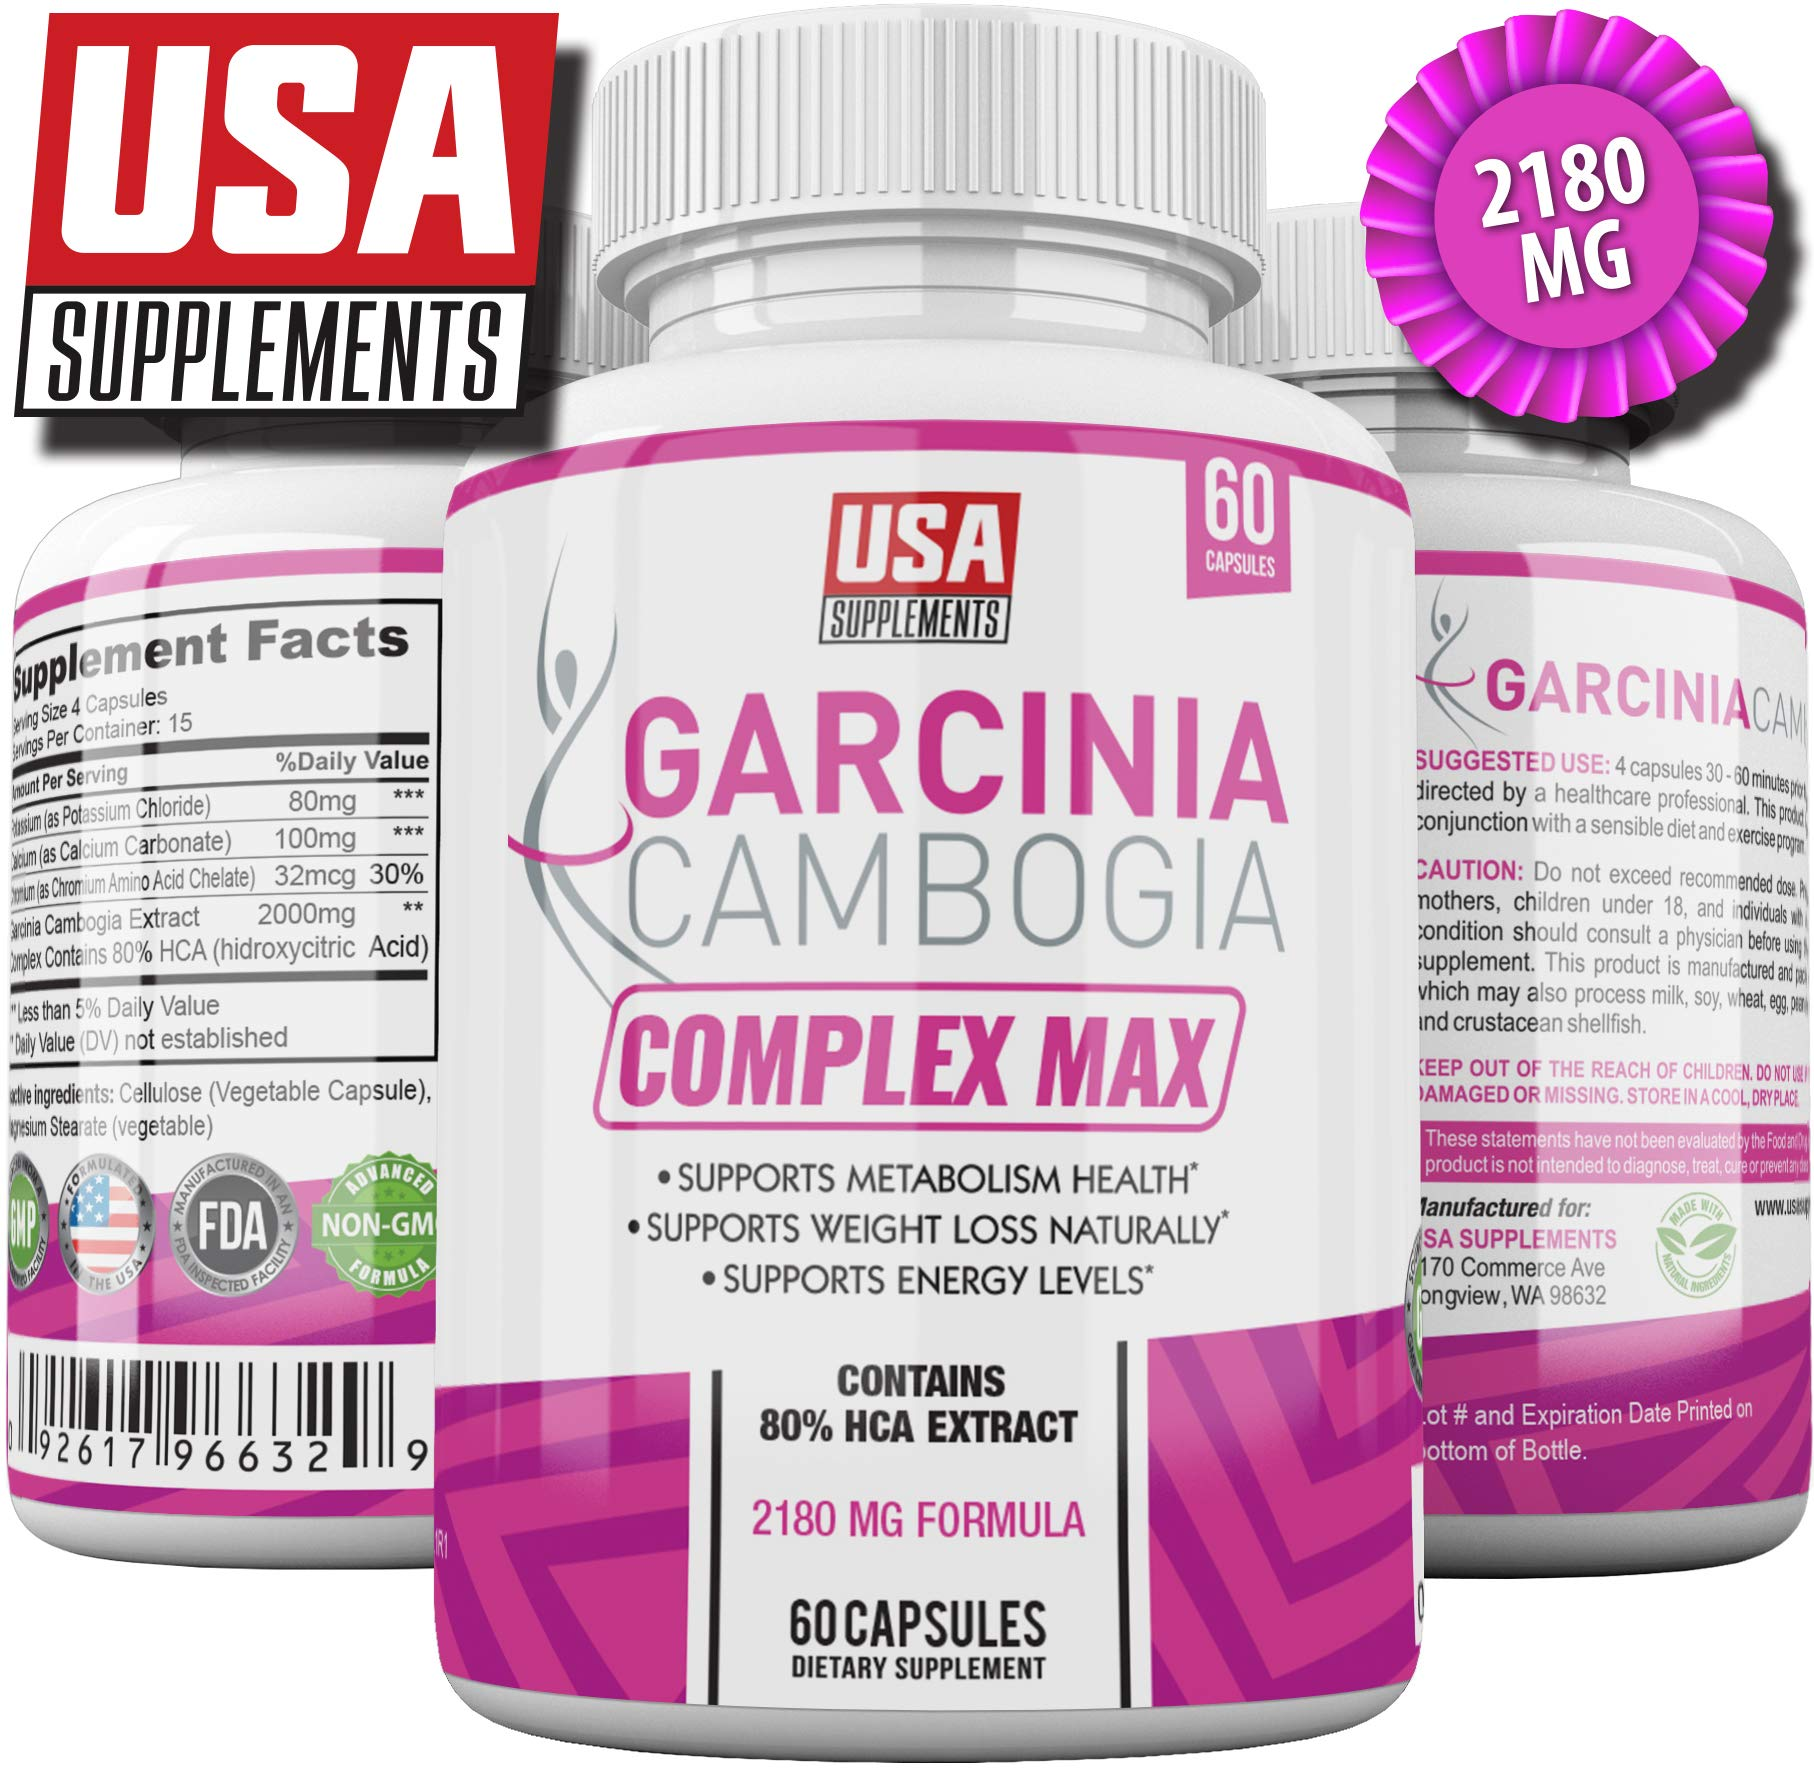 Garcinia Cambogia Weight Loss Pills | Natural Appetite Suppressant for Women | Best Appetite Suppression Supplement | Vegan Veggie Caps | 100% Pure Extract Works Great with Apple Cider or Forskolin